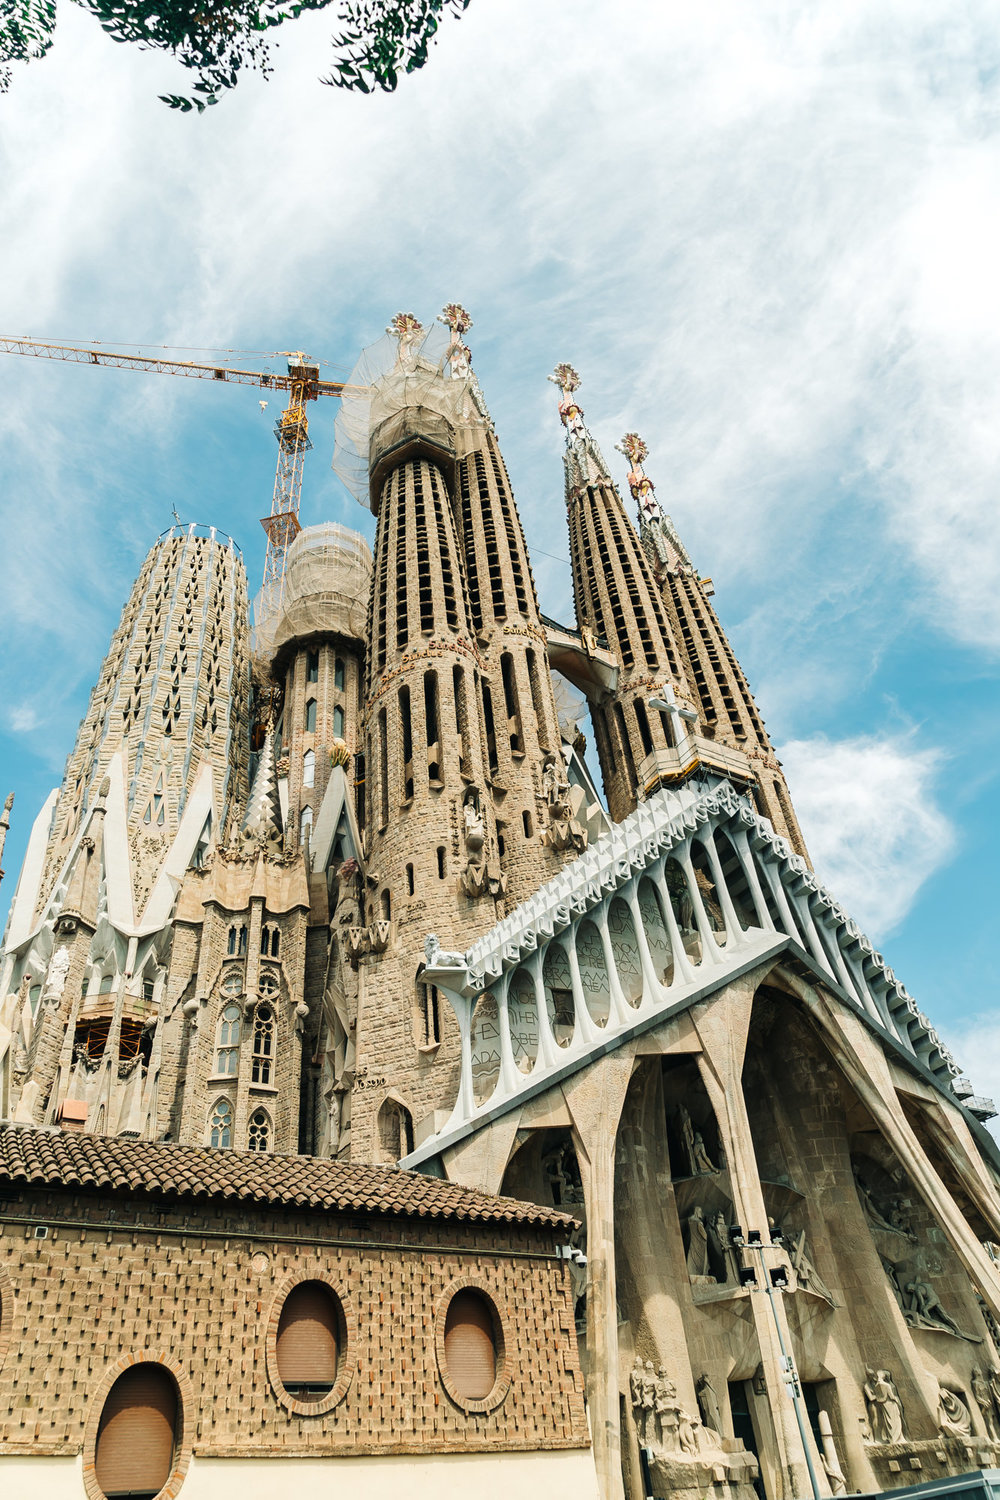 La Sagrada Familia - the defining work of Antoni Gaudi